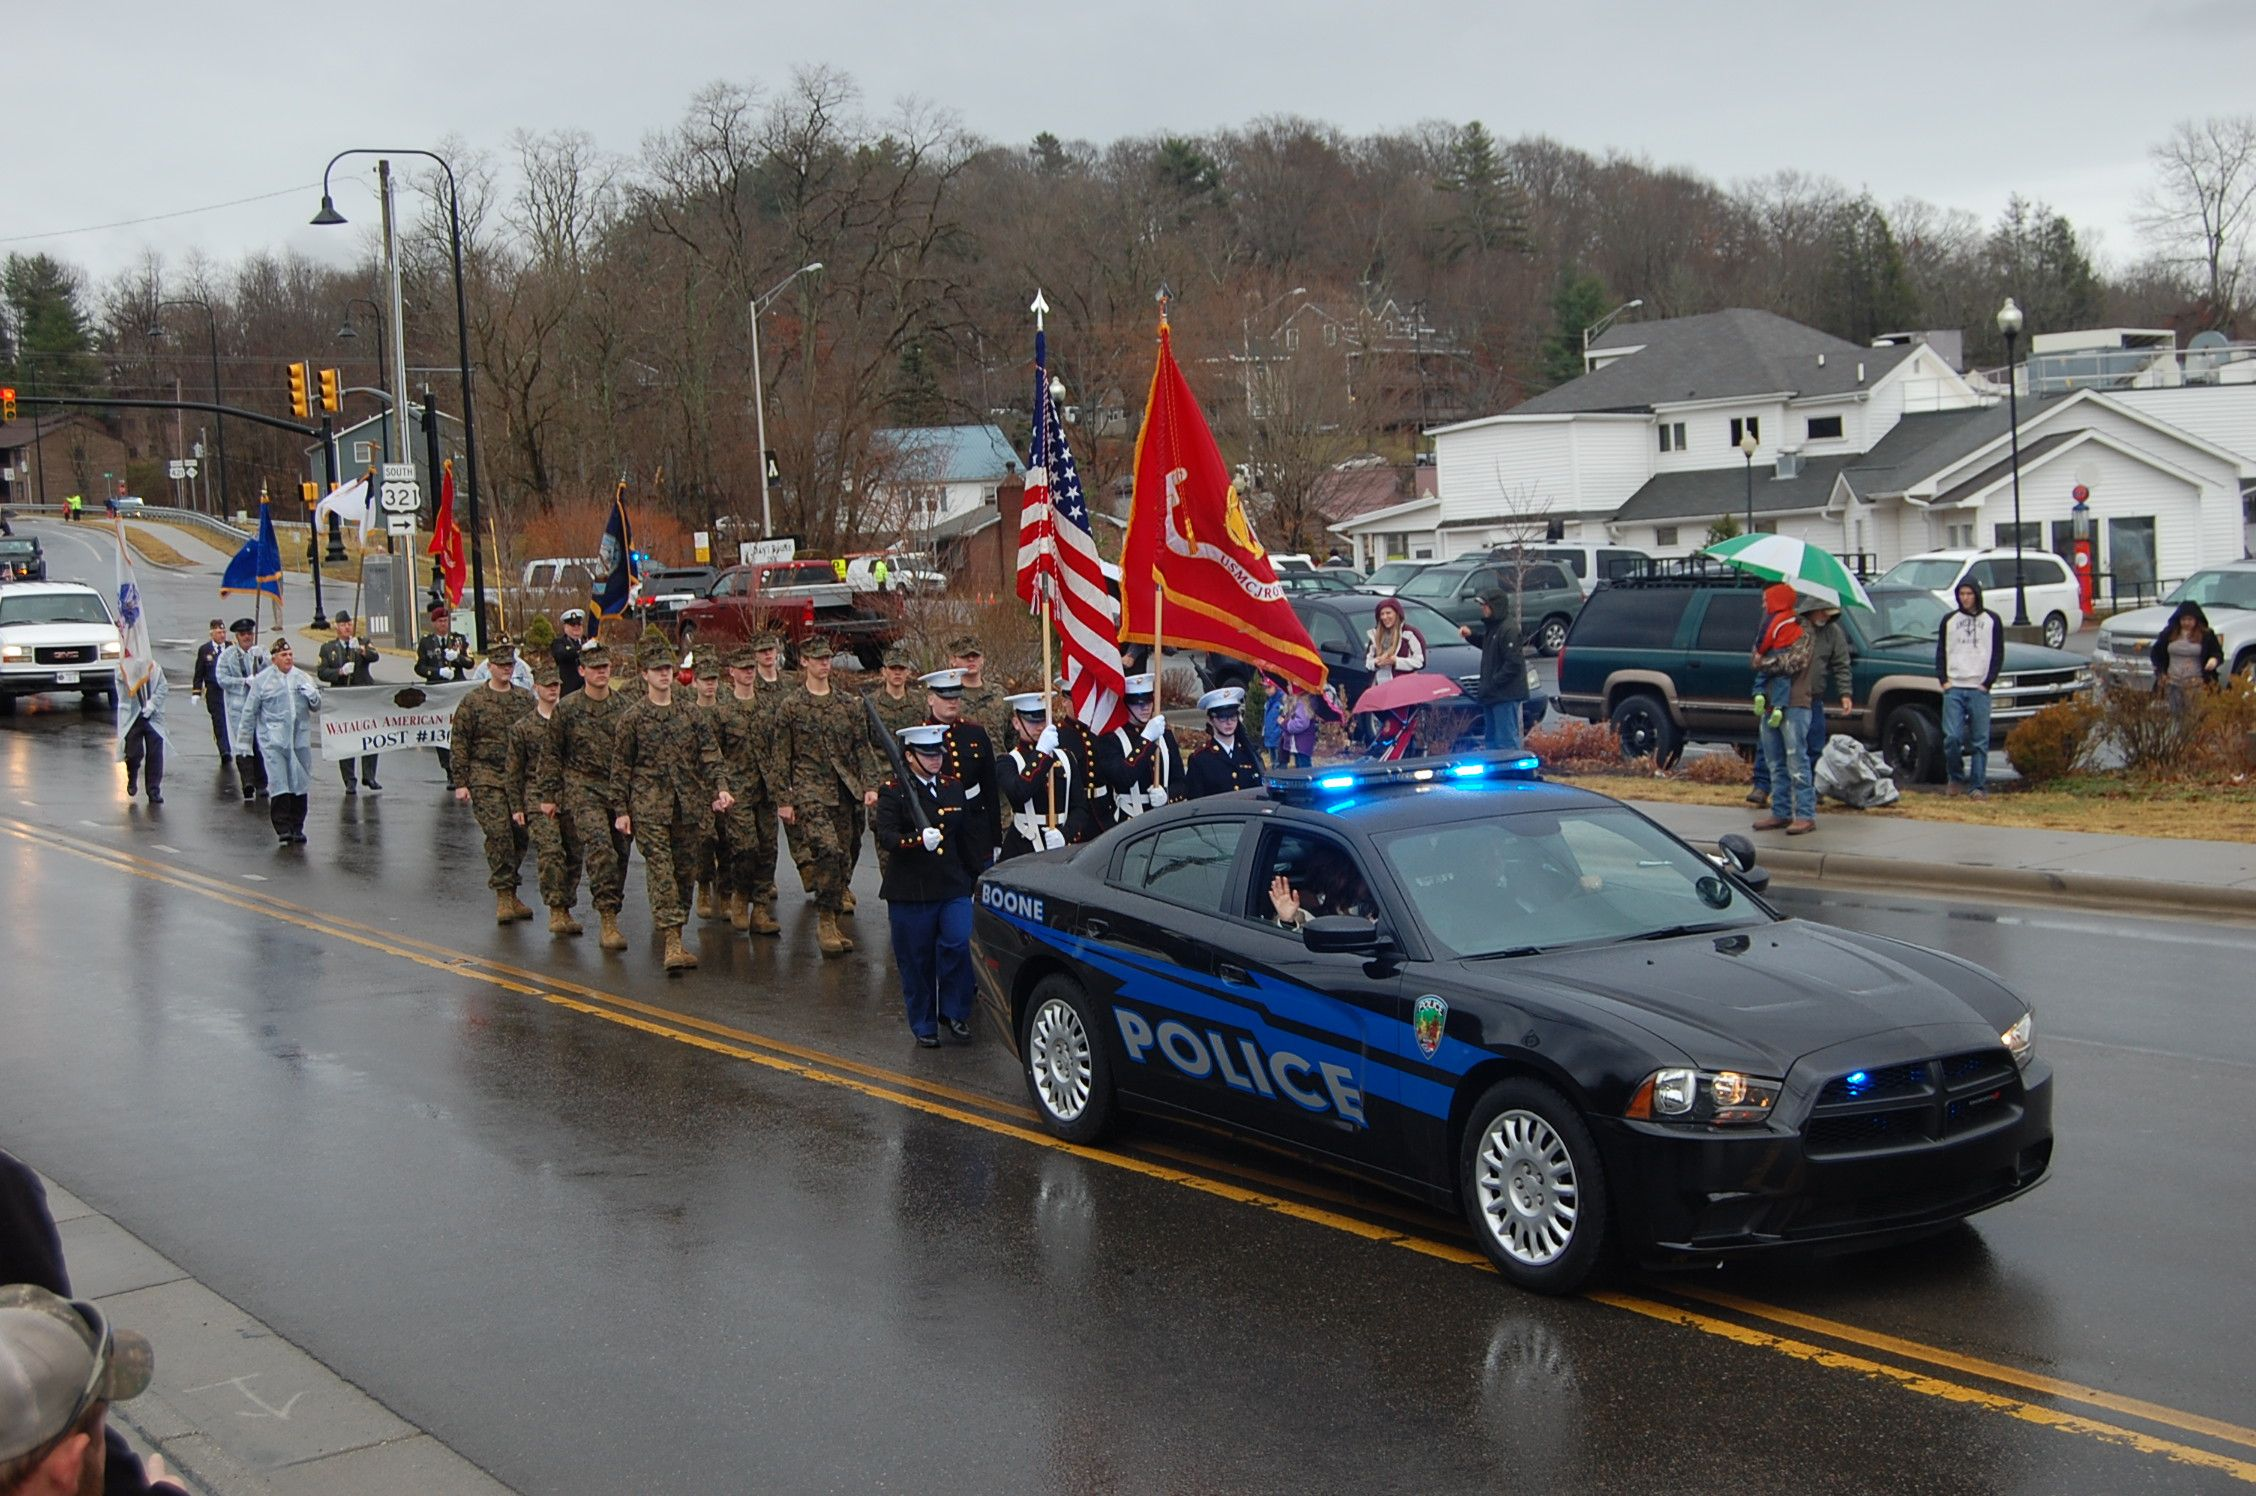 Boone Christmas Parade 2019 Boone Christmas Parade 2014 Pictures & Video   WataugaOnline.com